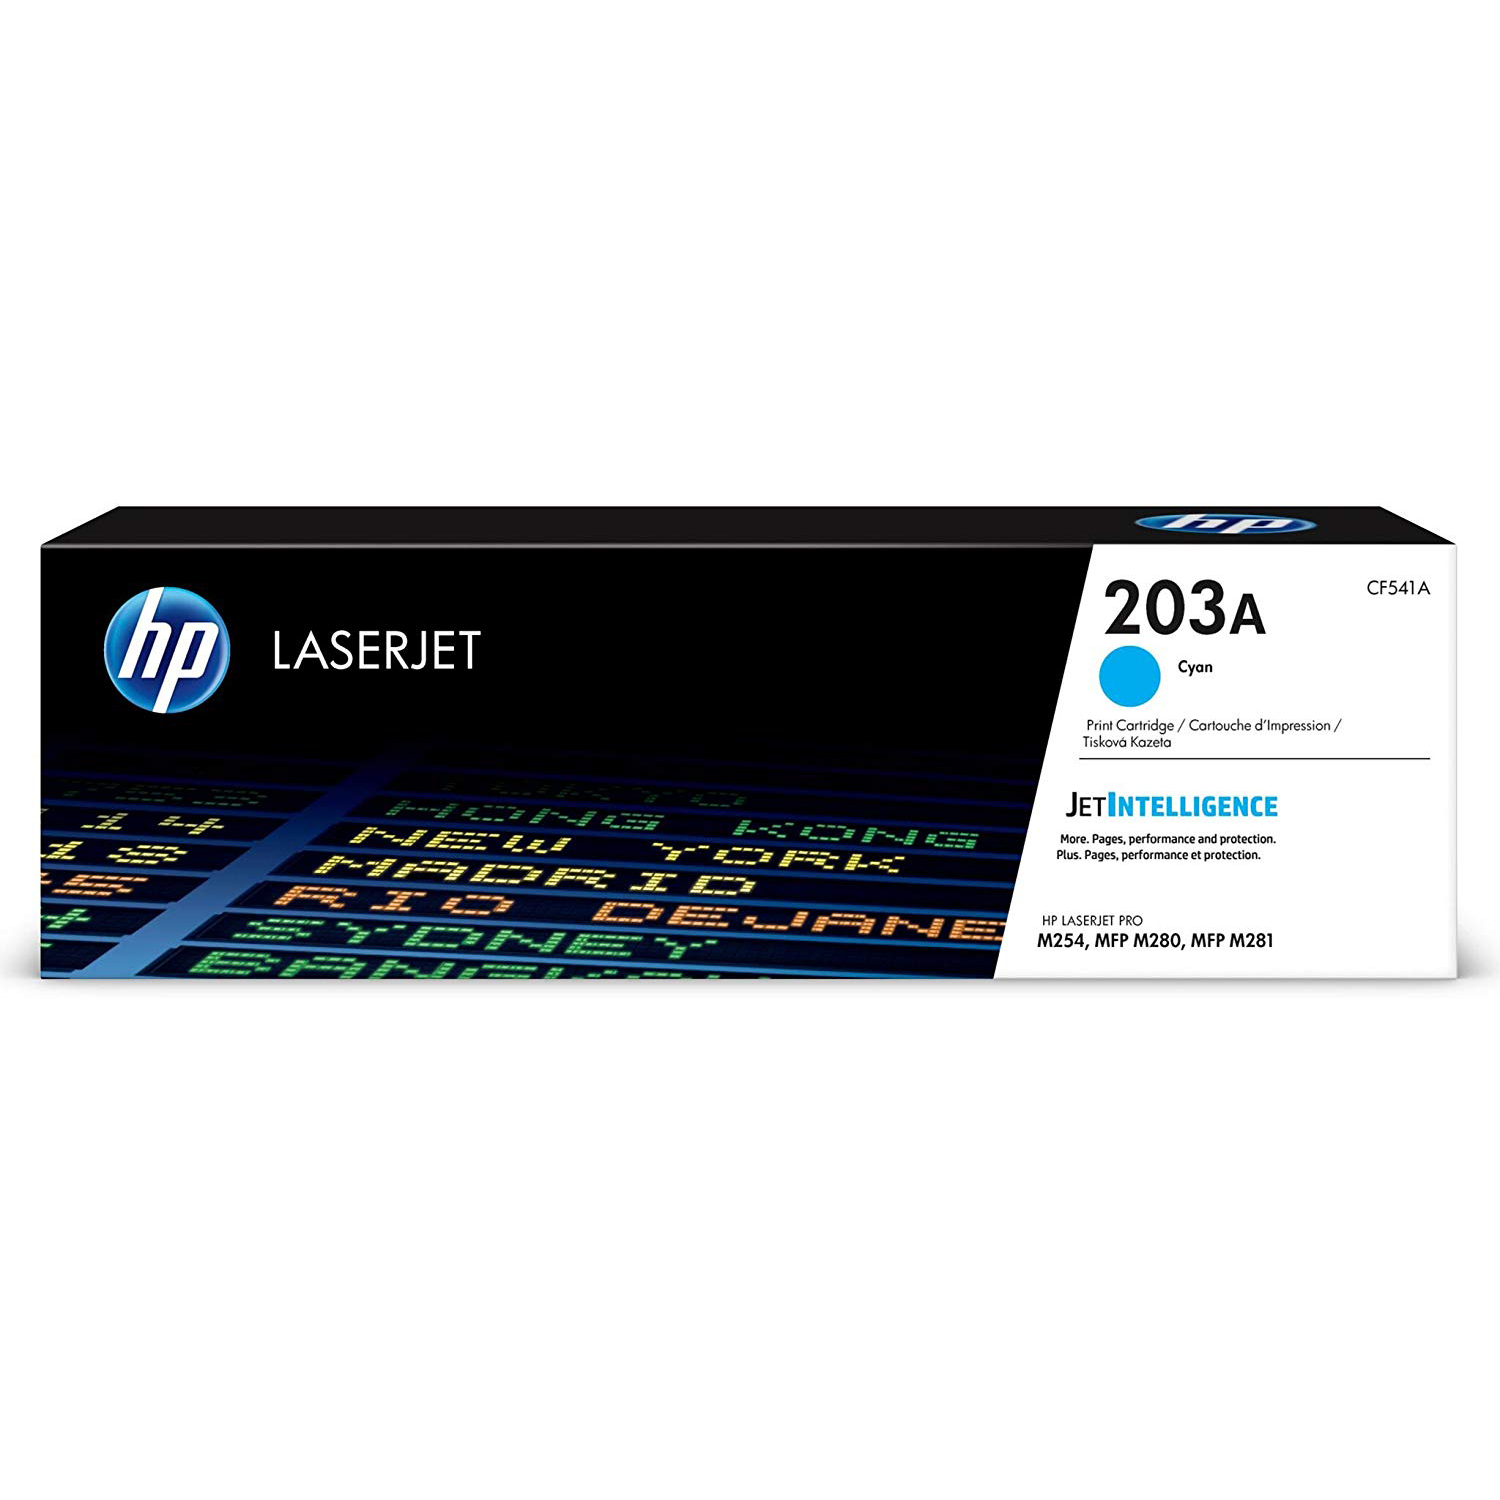 HP 203A (CF541A) Laserjet Toner Cartridge - Cyan